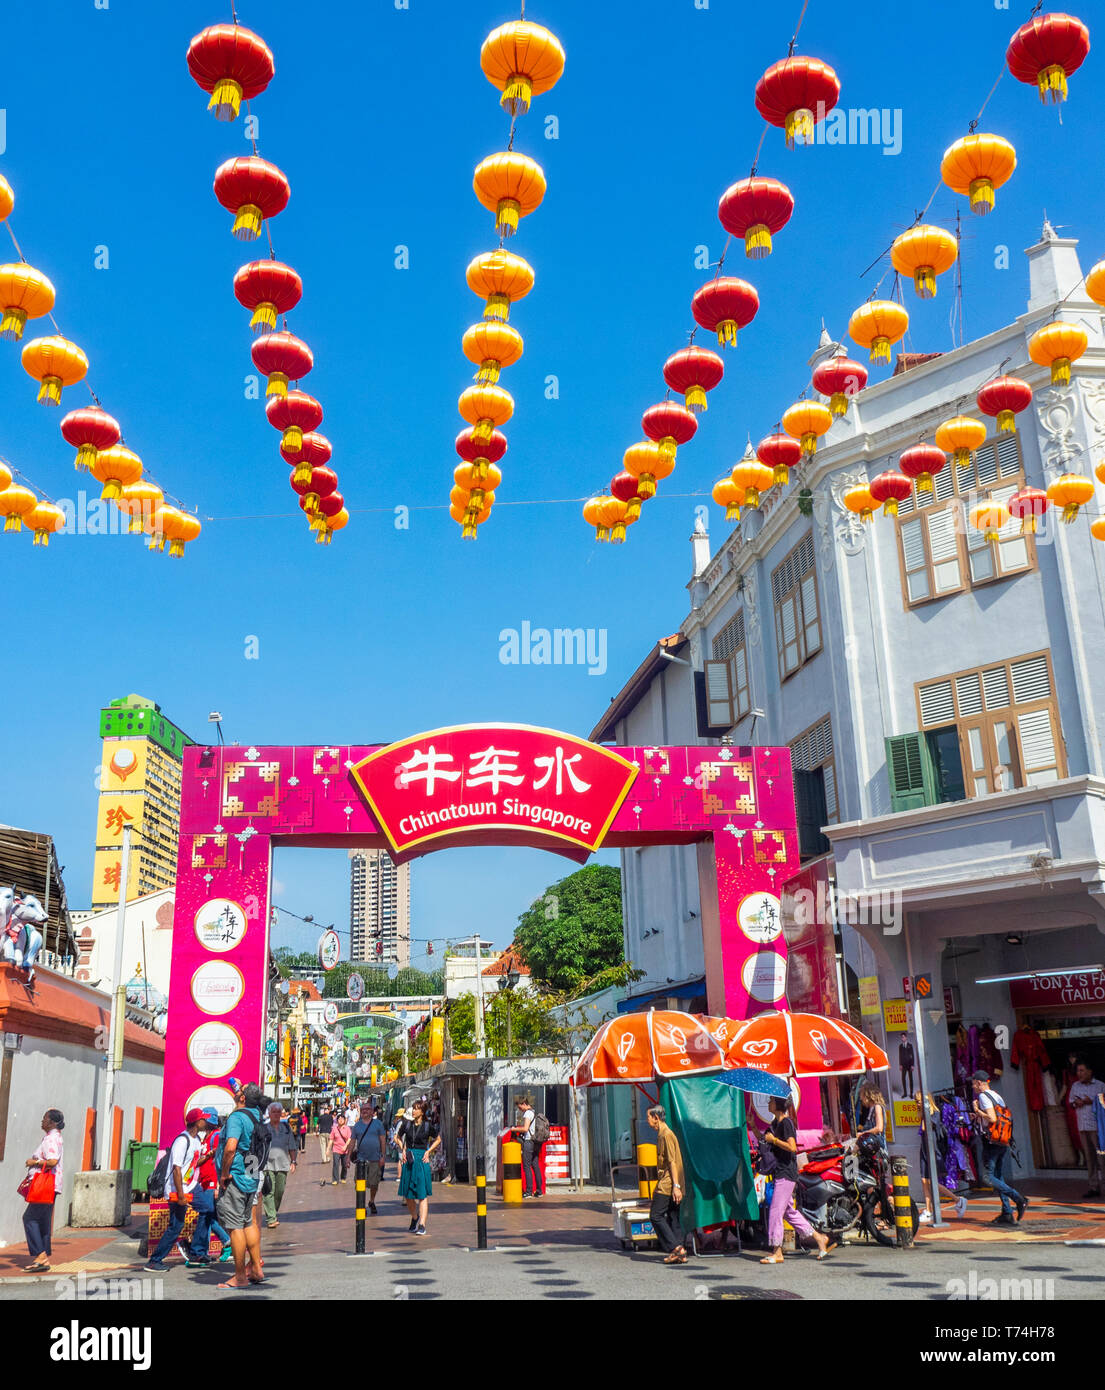 Chinese red lanterns for Chinese New Year celebrations  and tourists at gateway arch entrance to Pagoda Street Chinatown Singapore. Stock Photo